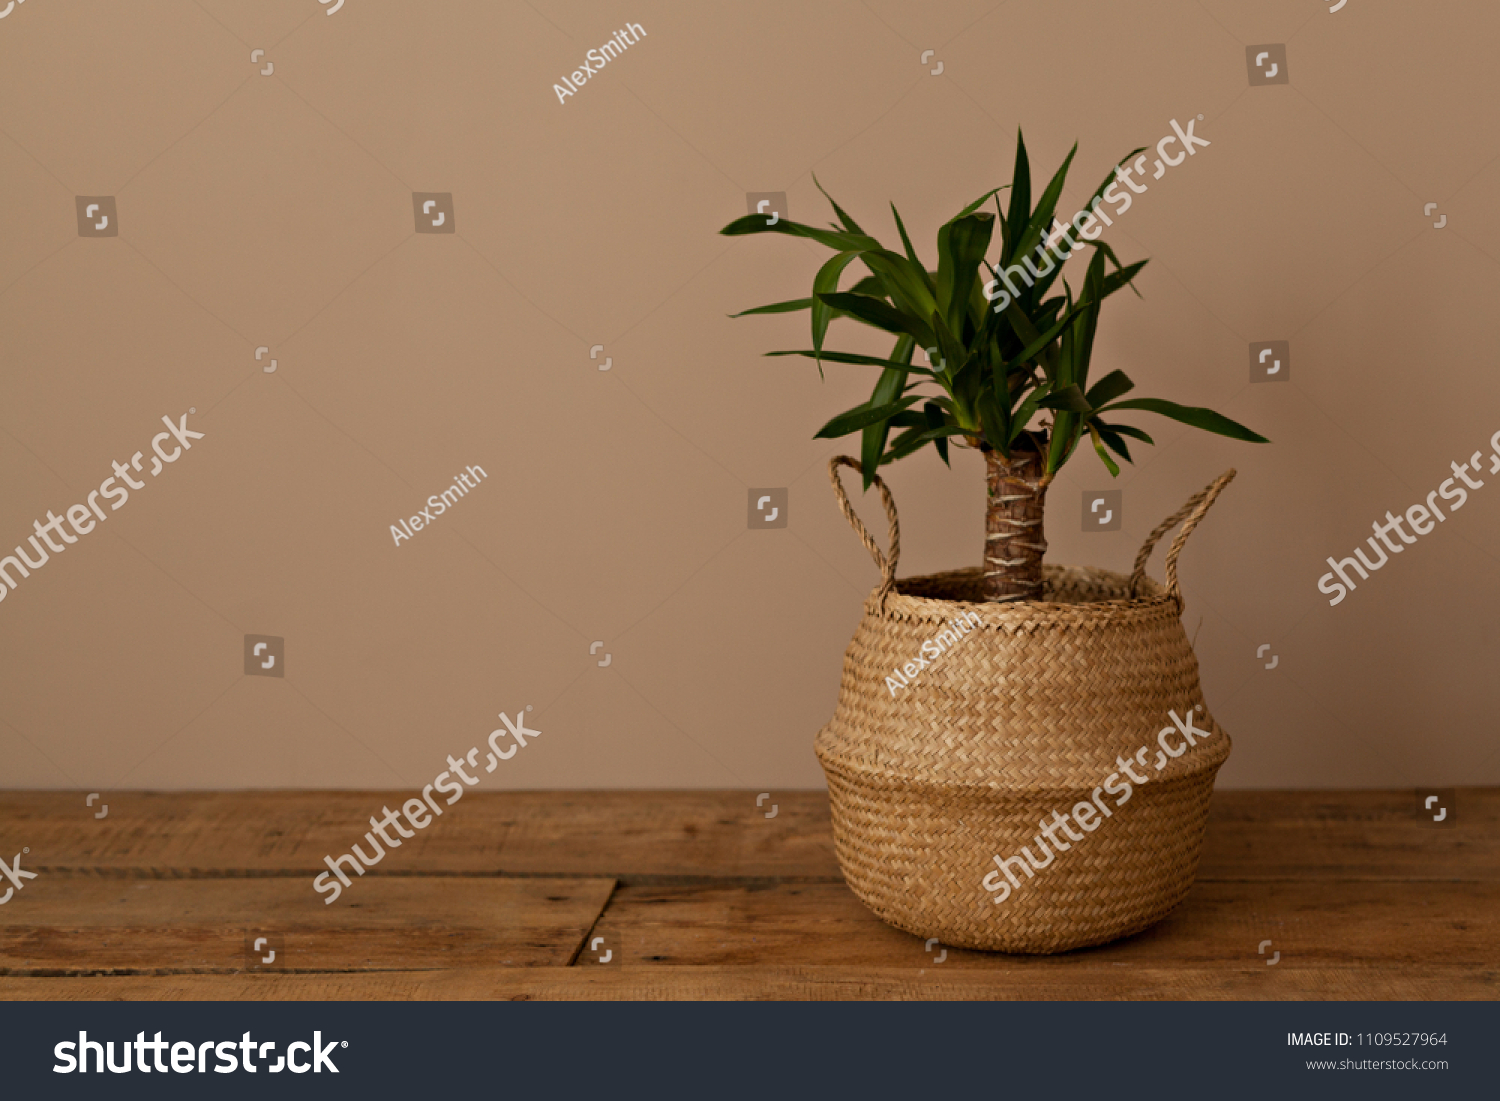 Chrysalidocarpus Space For Life Home Plans Braided Pot Background Beige Stock Photo Edit Now